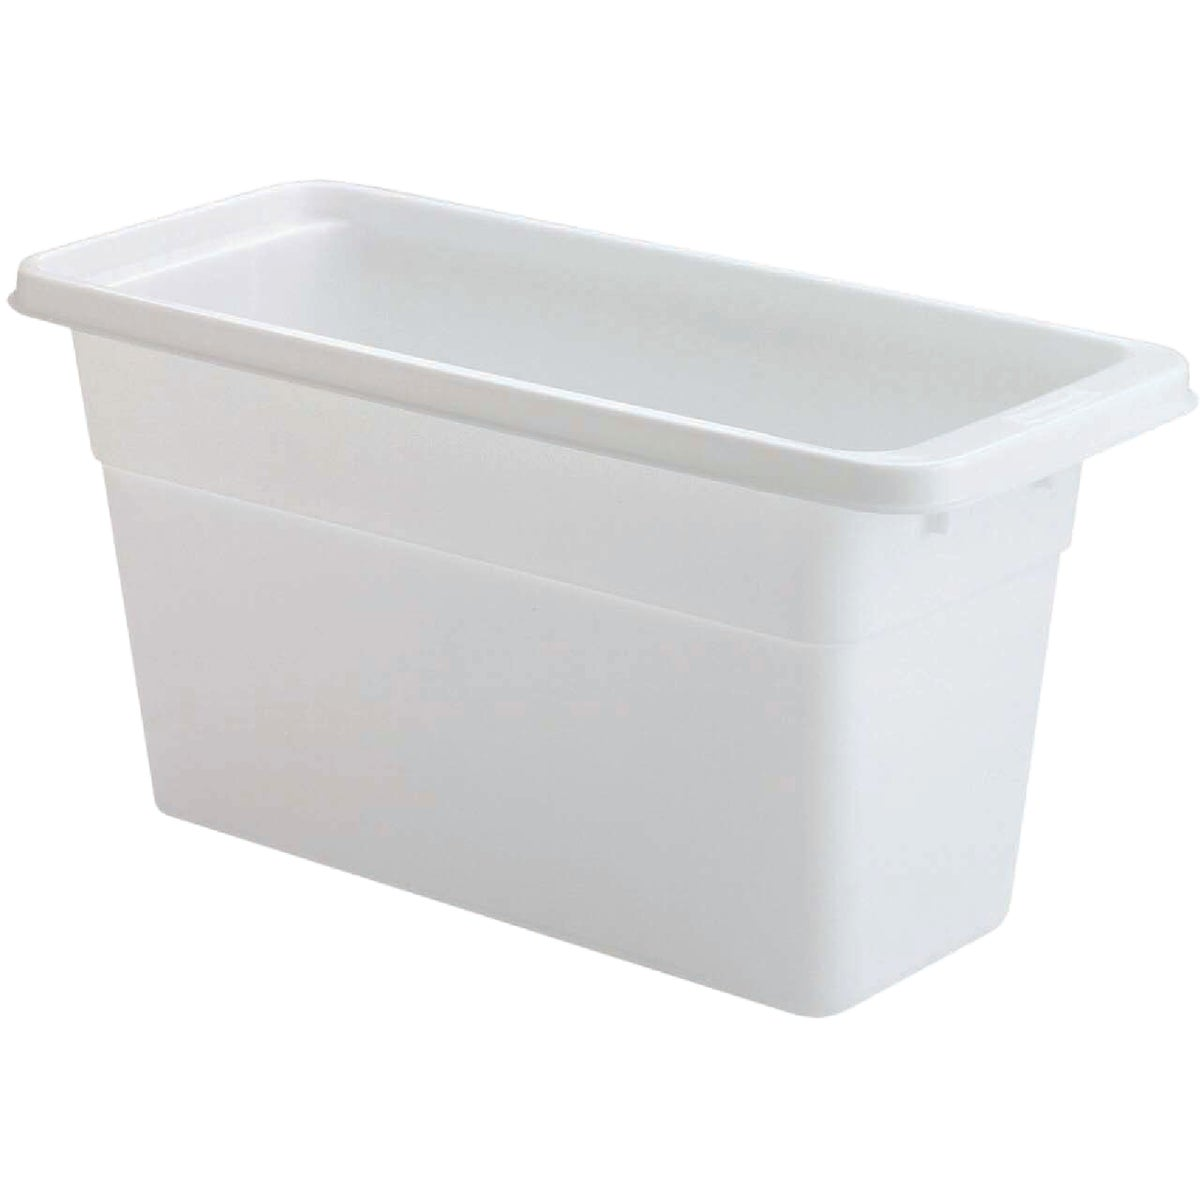 WHITE ICE CUBE BIN - FG2862RDWHT by Rubbermaid Home